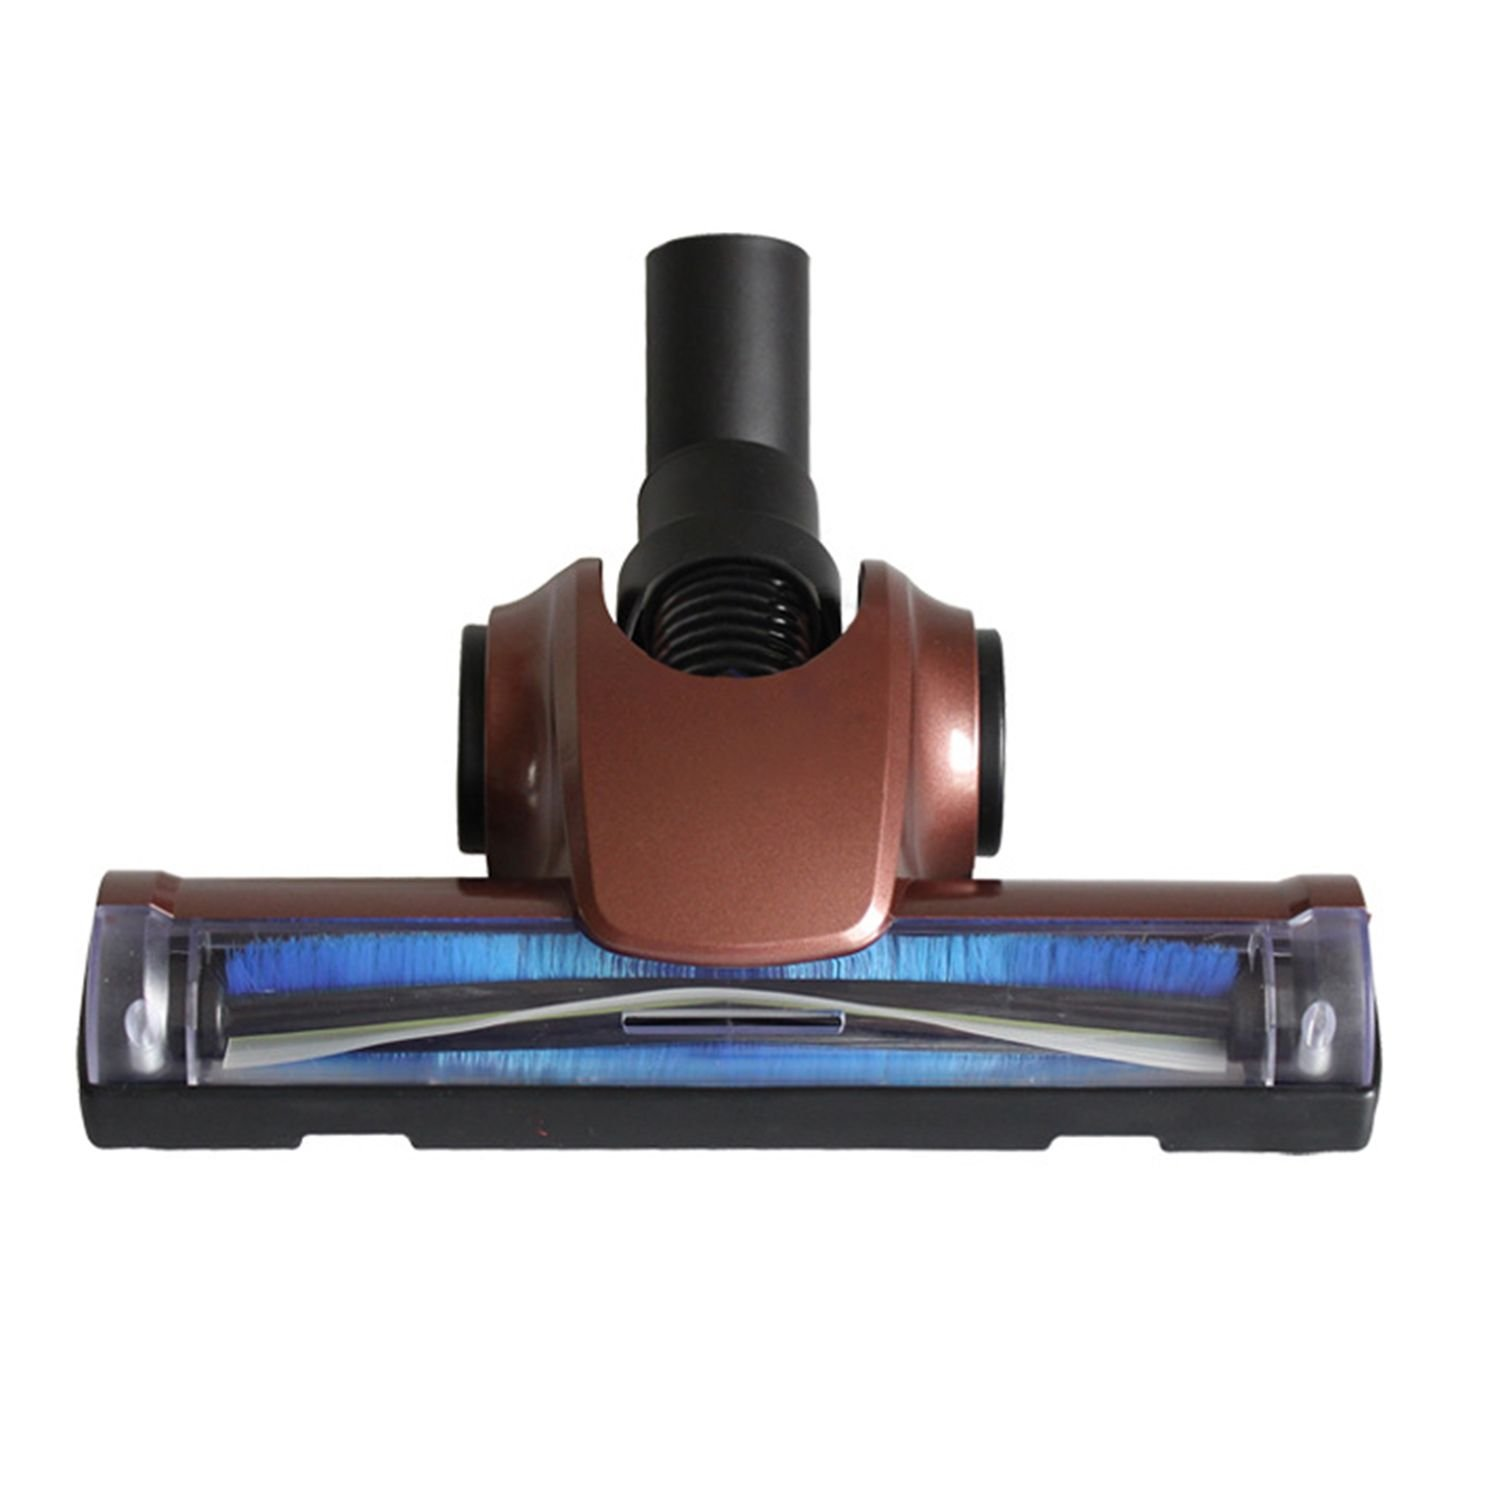 Xigeapg 32mm New European Version Vacuum Cleaner Accessories for Efficient Air Brush The Floor Carpet Efficient Cleaning